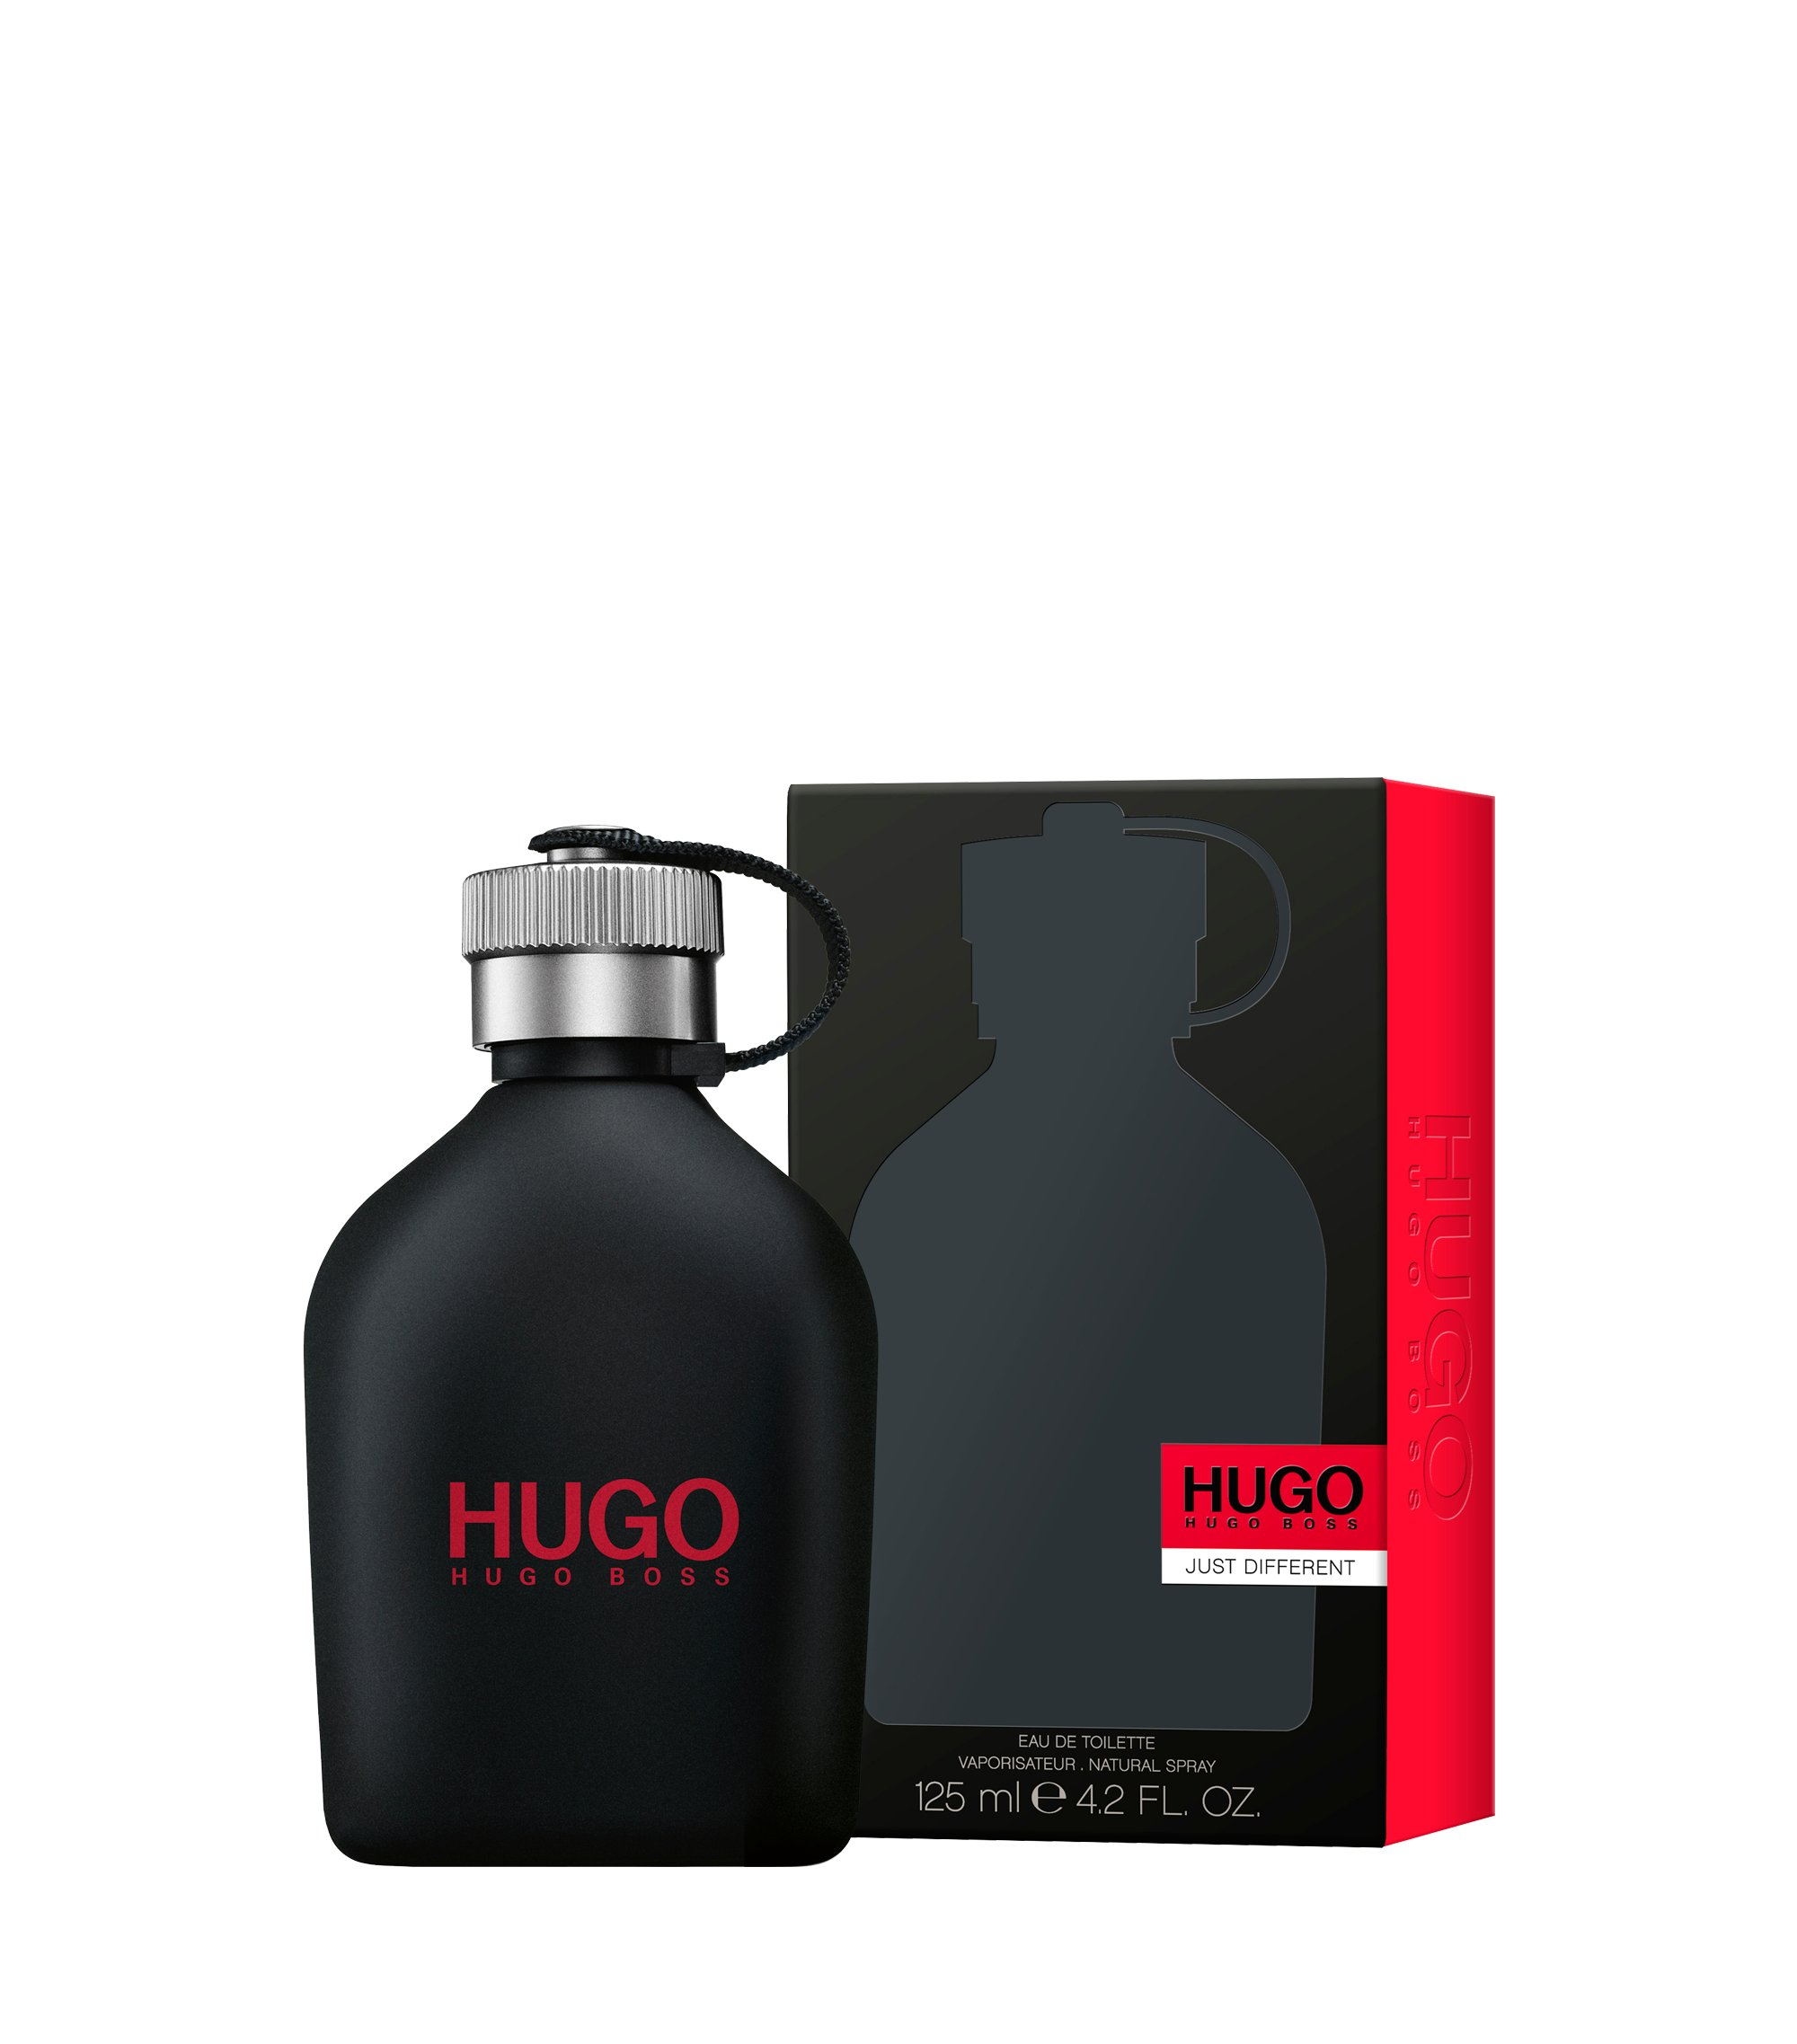 Eau de toilette HUGO Just Different da 125 ml, Assorted-Pre-Pack